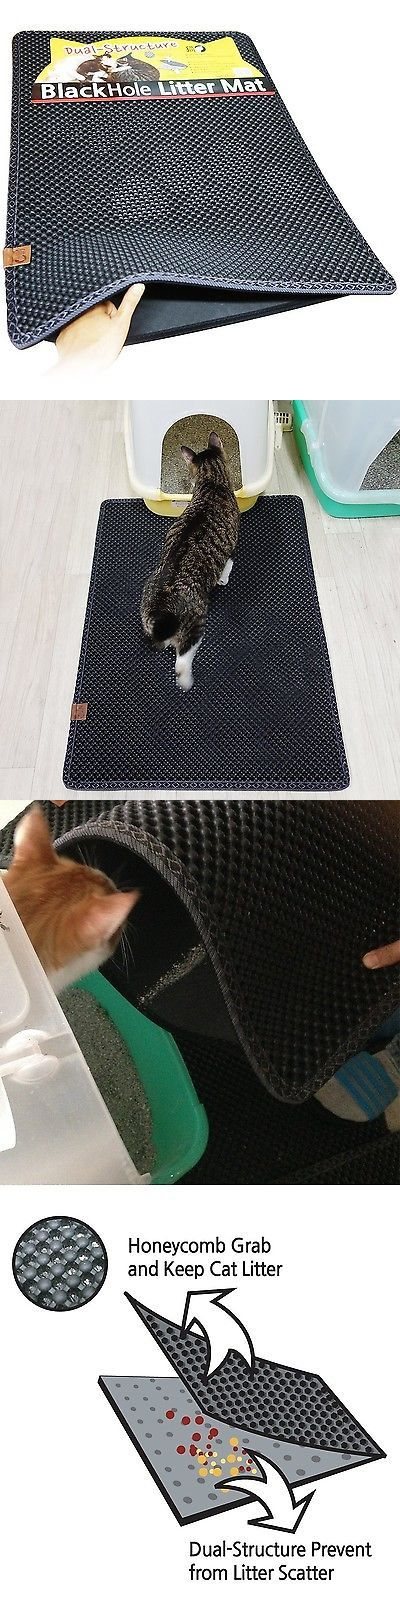 Litter 116363: Blackhole Cat Litter Mat - Super Size Rectangular 30 X 23 - Blackhole L... New -> BUY IT NOW ONLY: $51.32 on eBay!